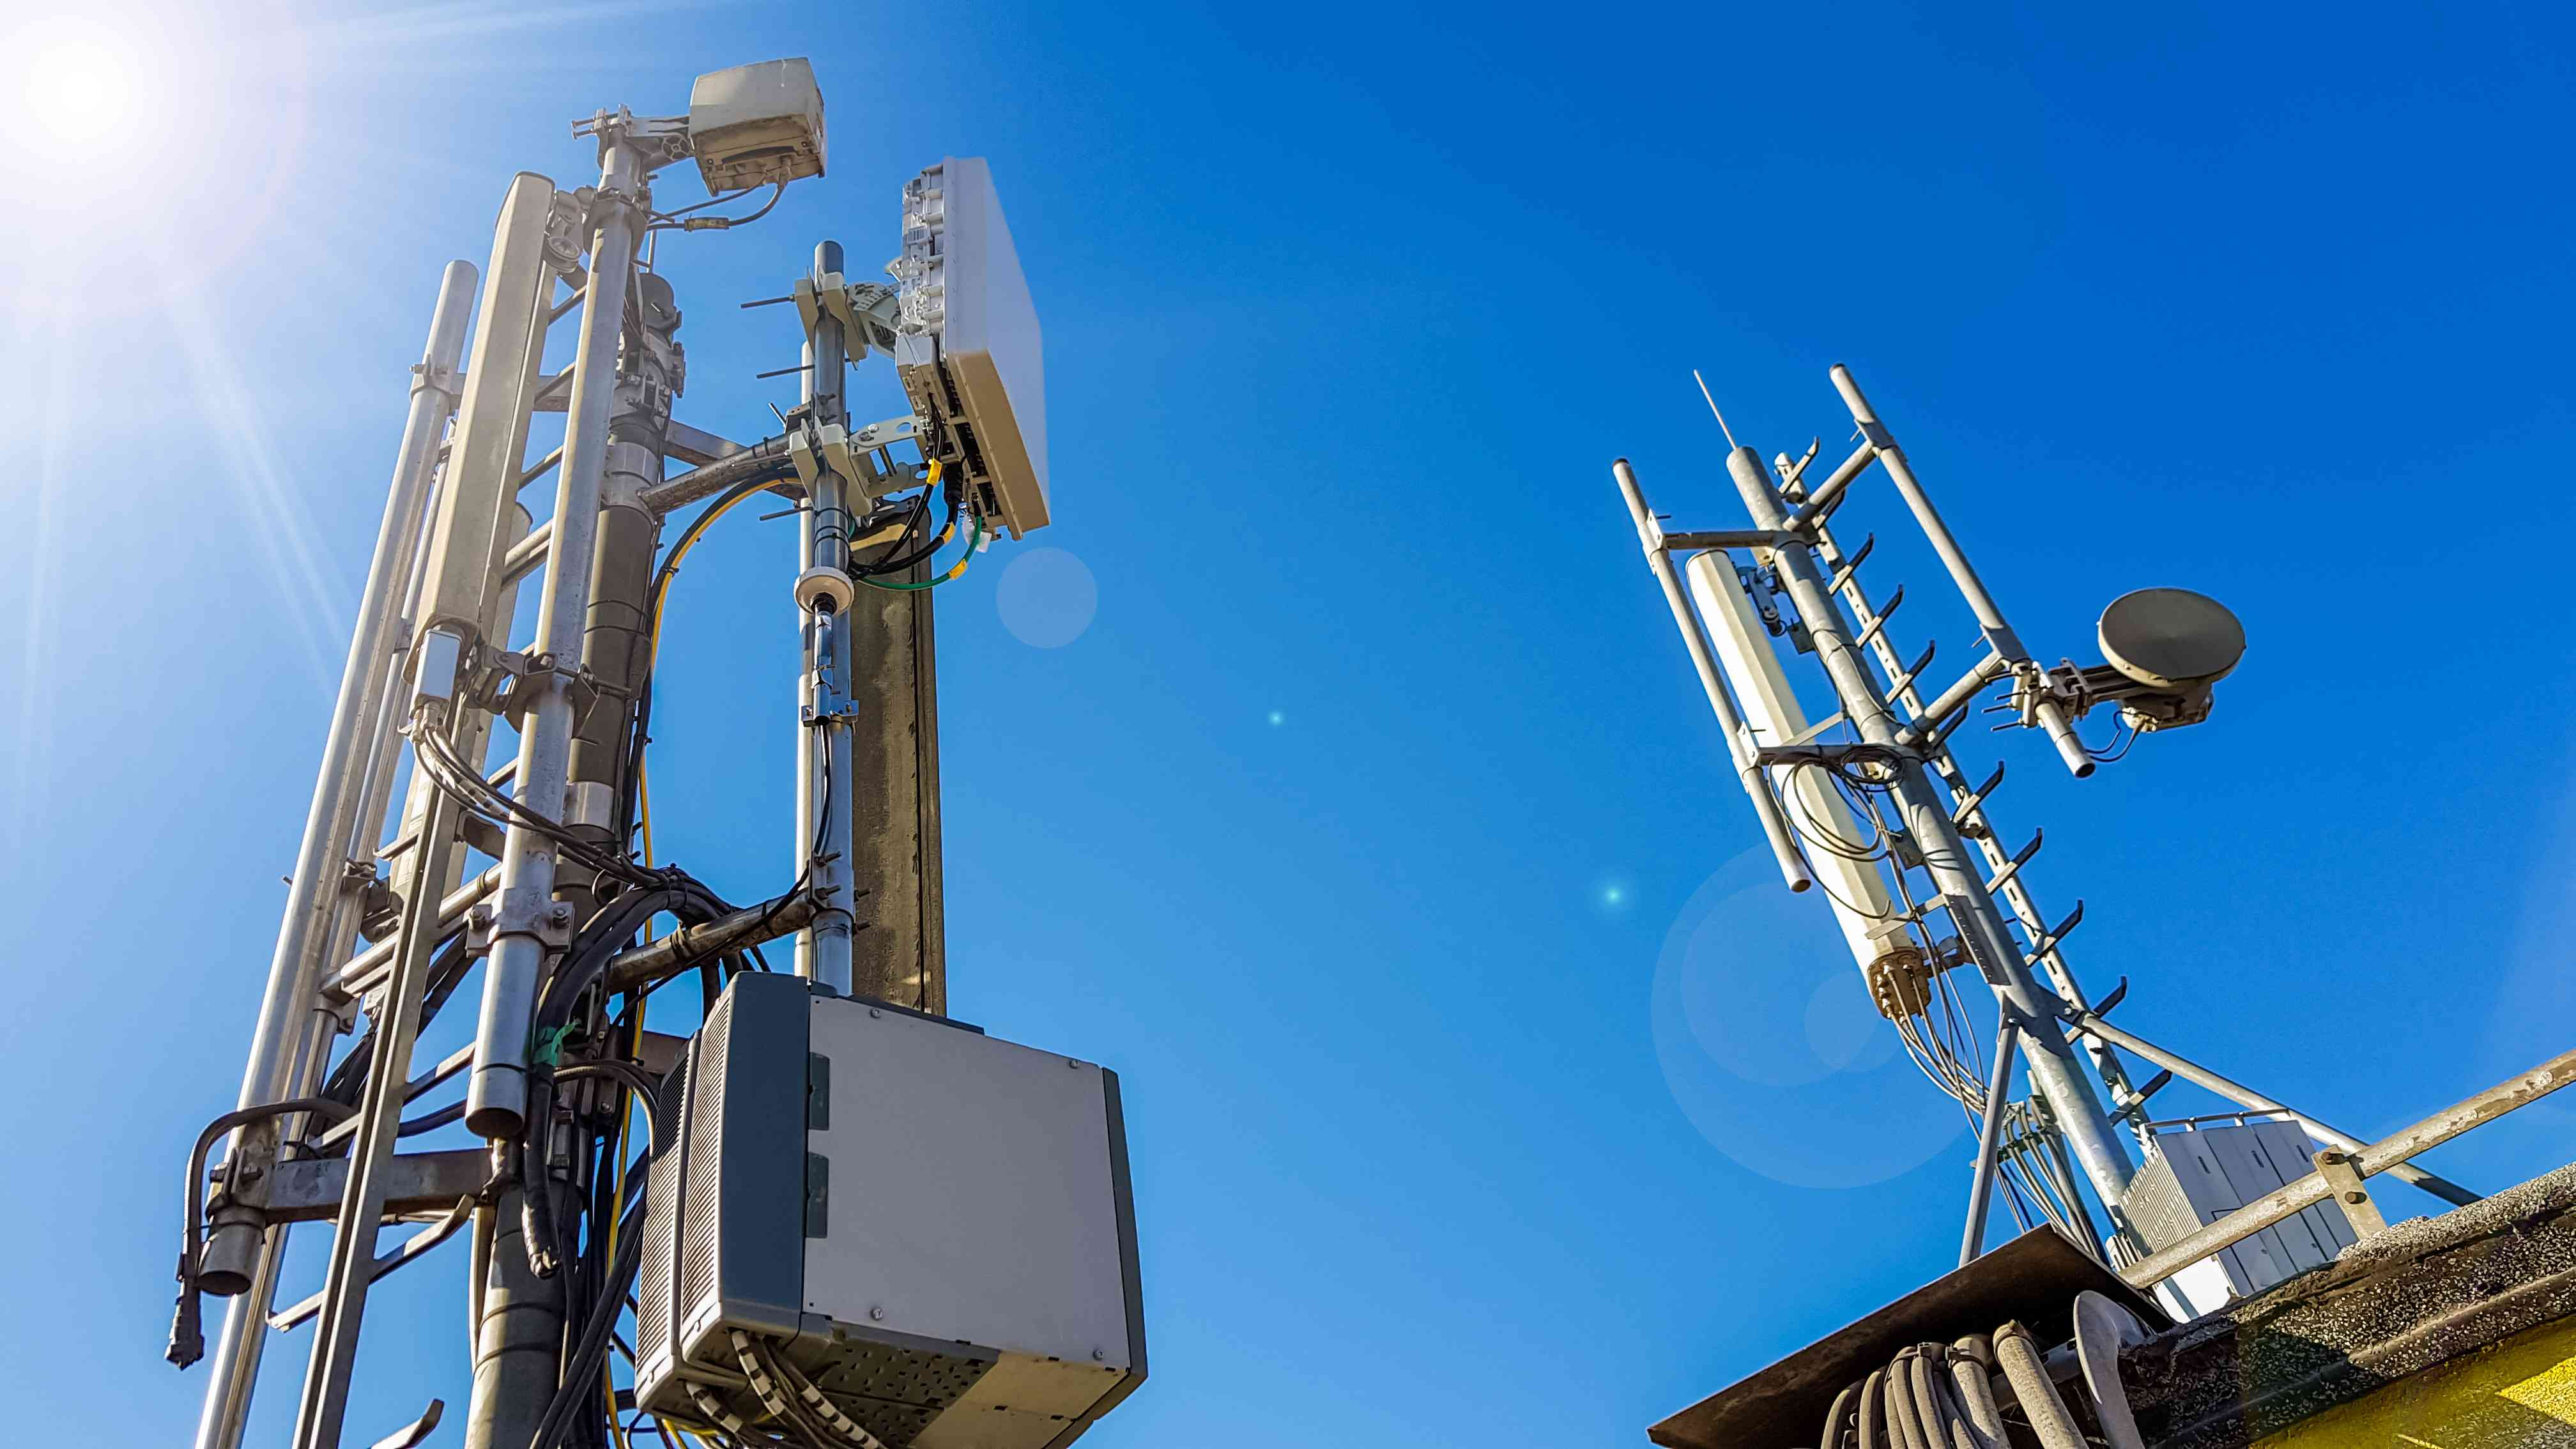 An array of 5G radio transmitters.